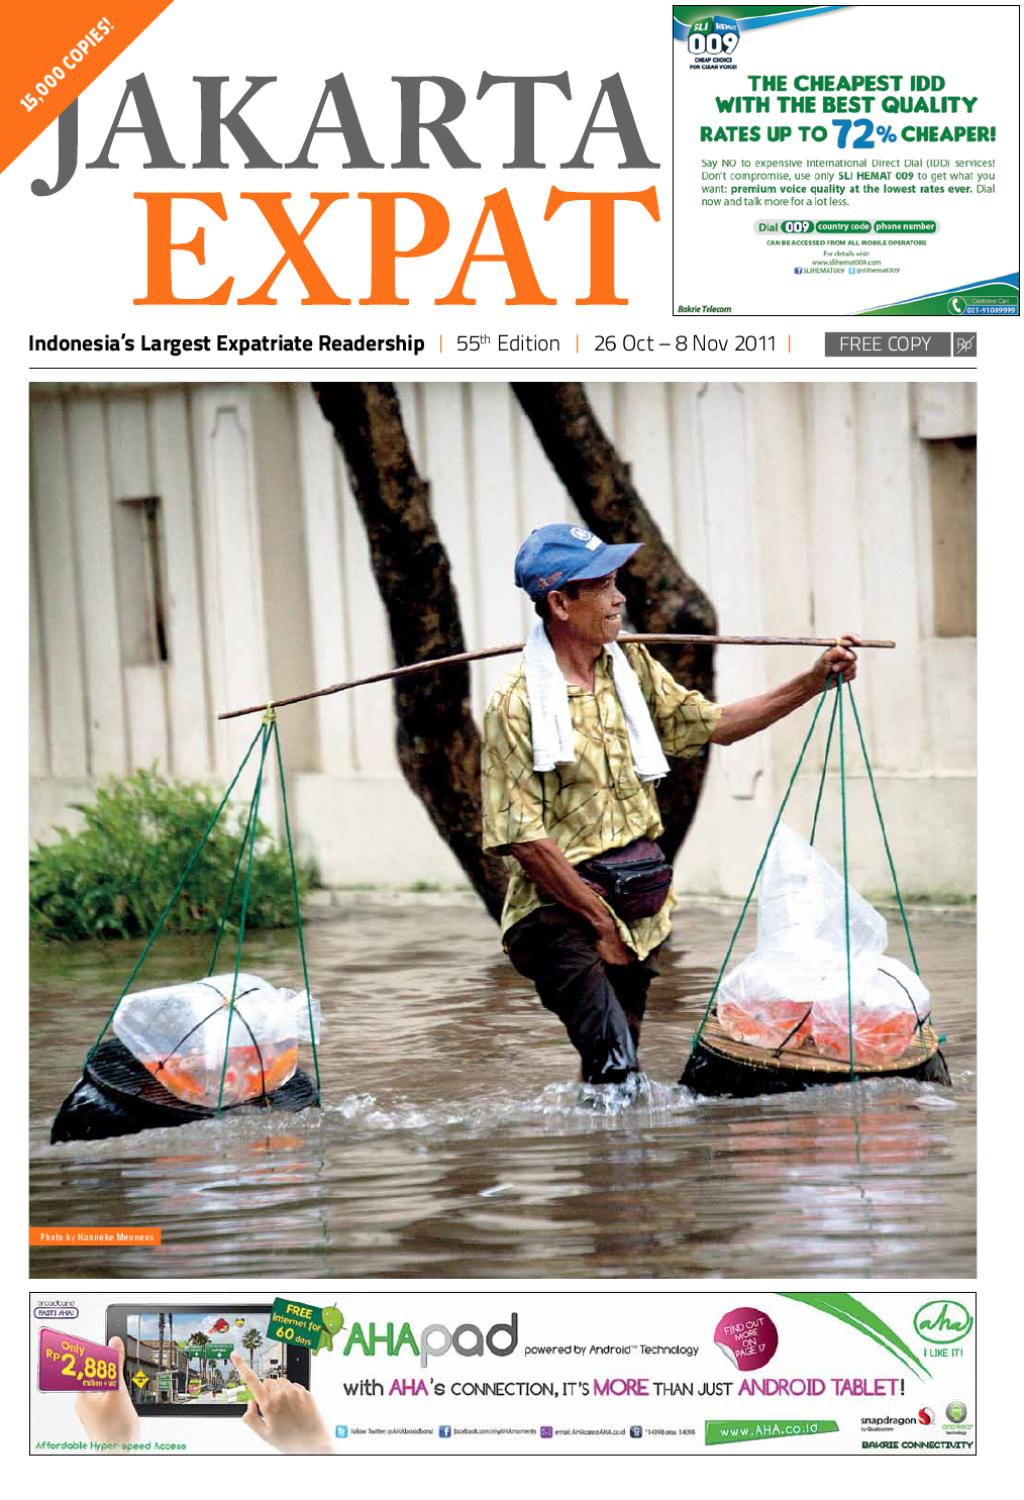 Jakarta Expat - issue 55 - Unusual Ways to Make Money by